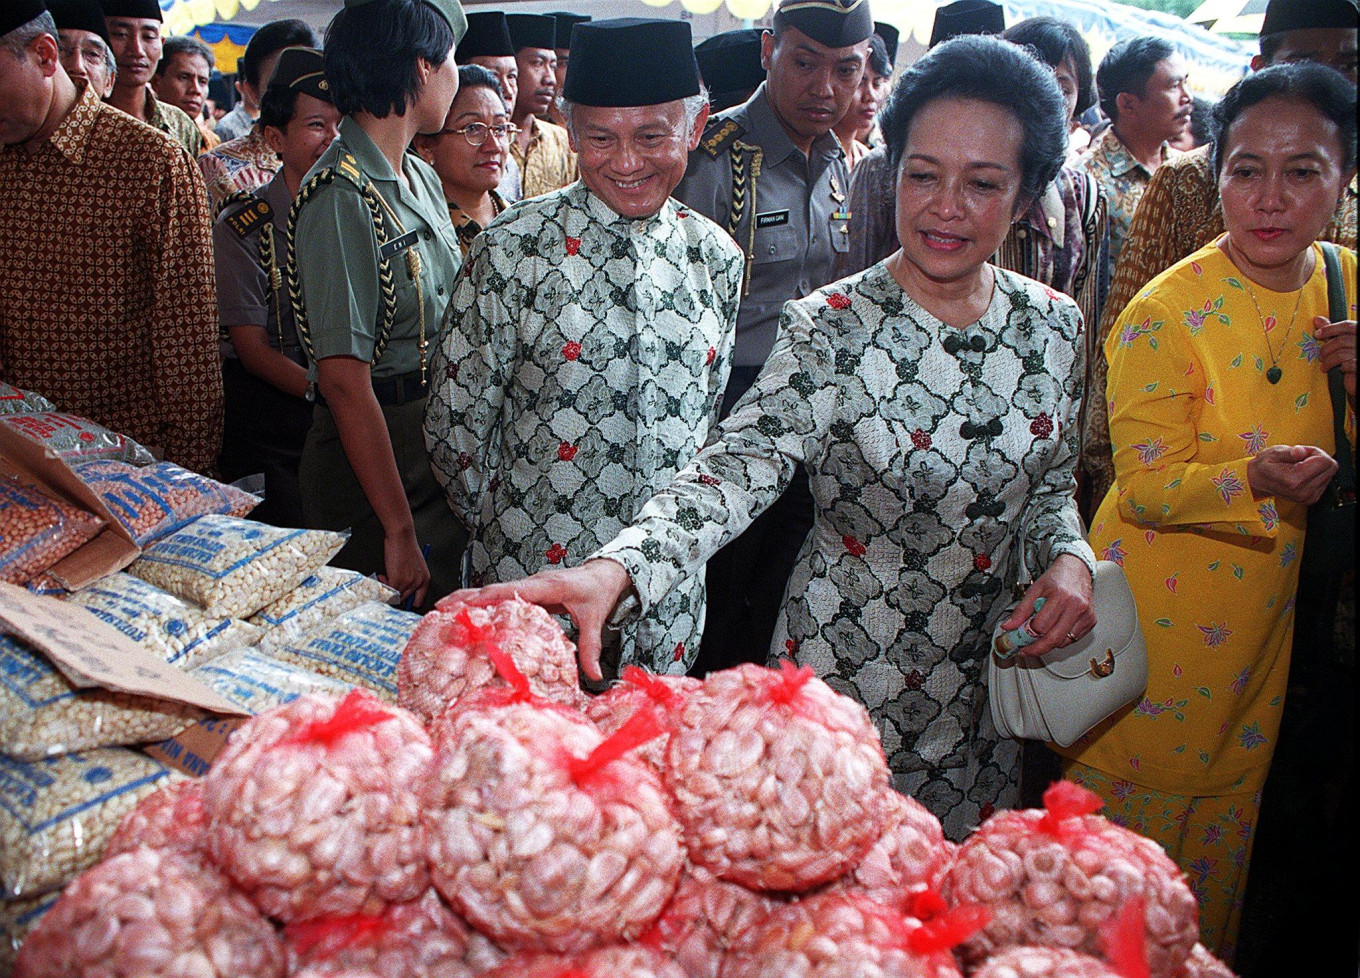 Hasri Ainun Habibie and her husband, Indonesian President B.J.Habibie (C), examine garlic at a cheap market set up in the National Monument Park in Jakarta, 09 January. Food and other basic needs are being offered at discount prices during the three-day event, which was opened by Hasri on Saturday. AFP/Kompas